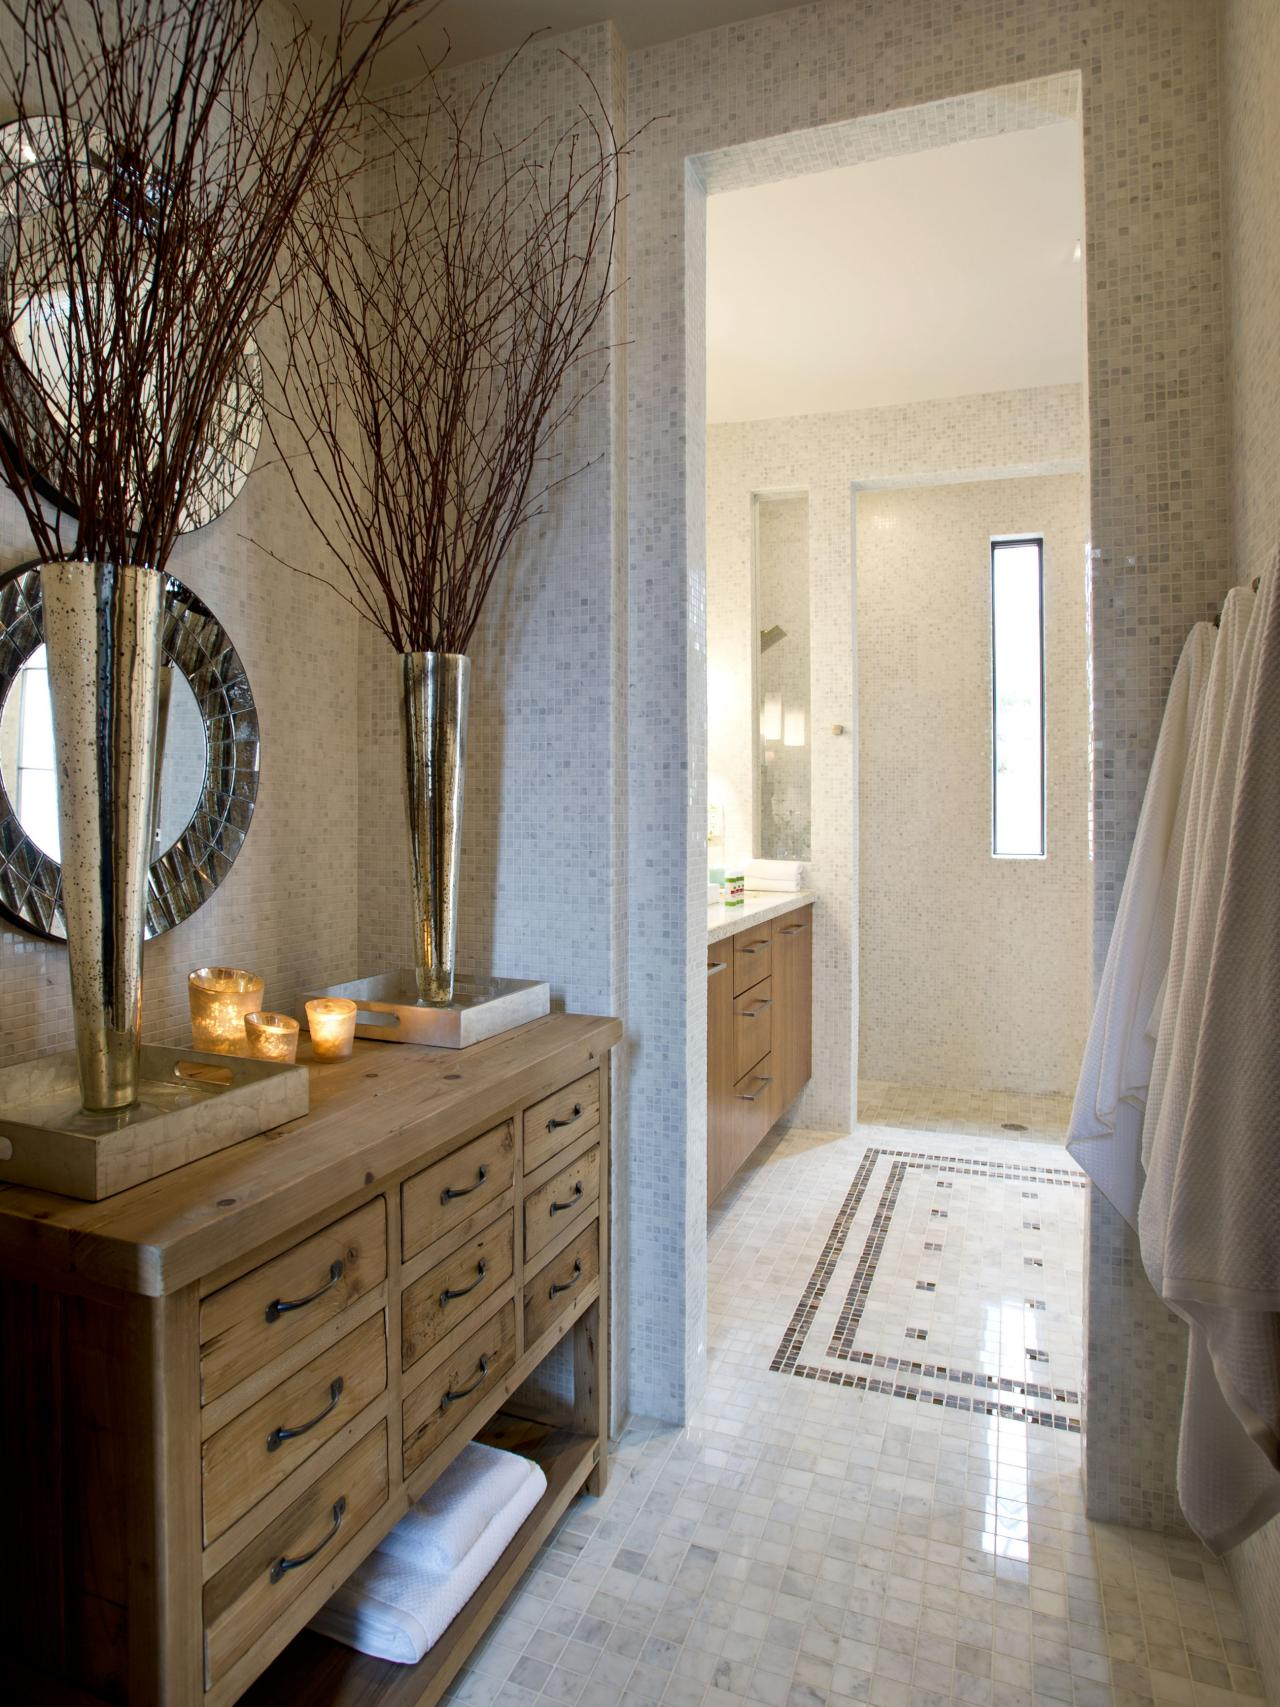 Master Bathroom With White Tile Floor And Rustic Wood